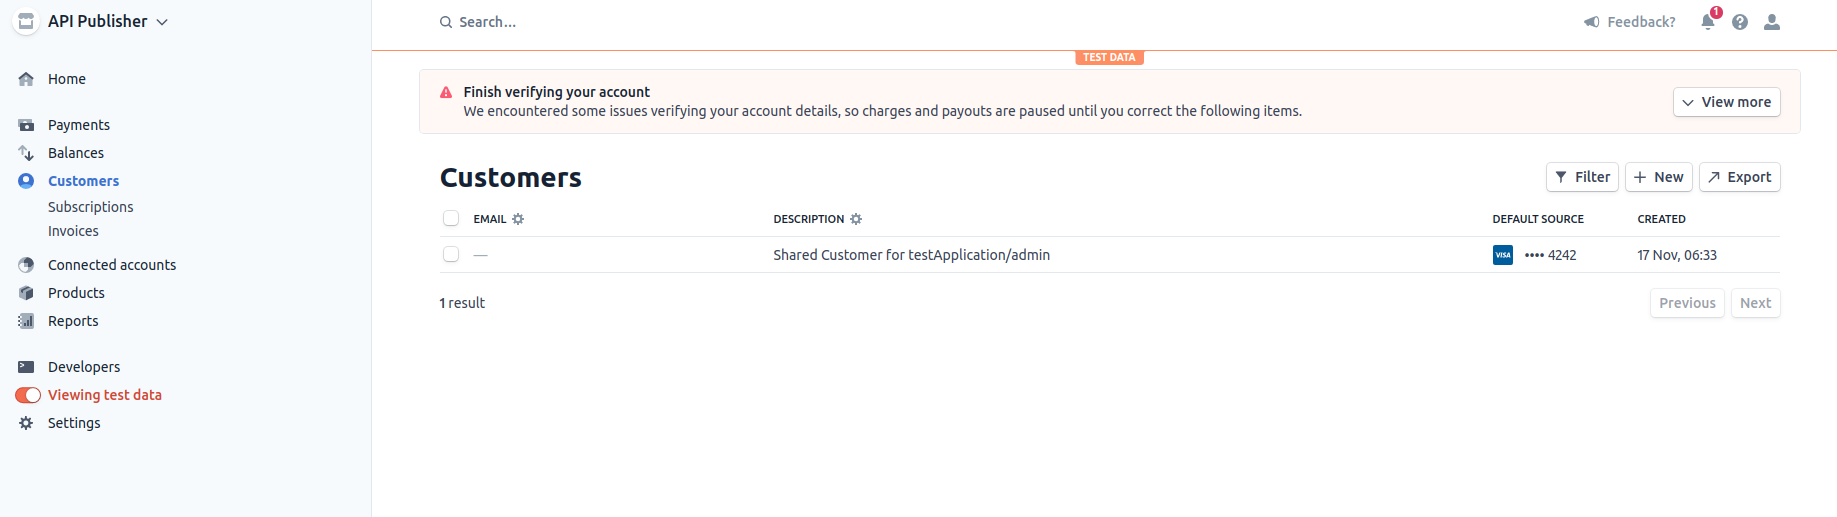 Shared customer in connected account